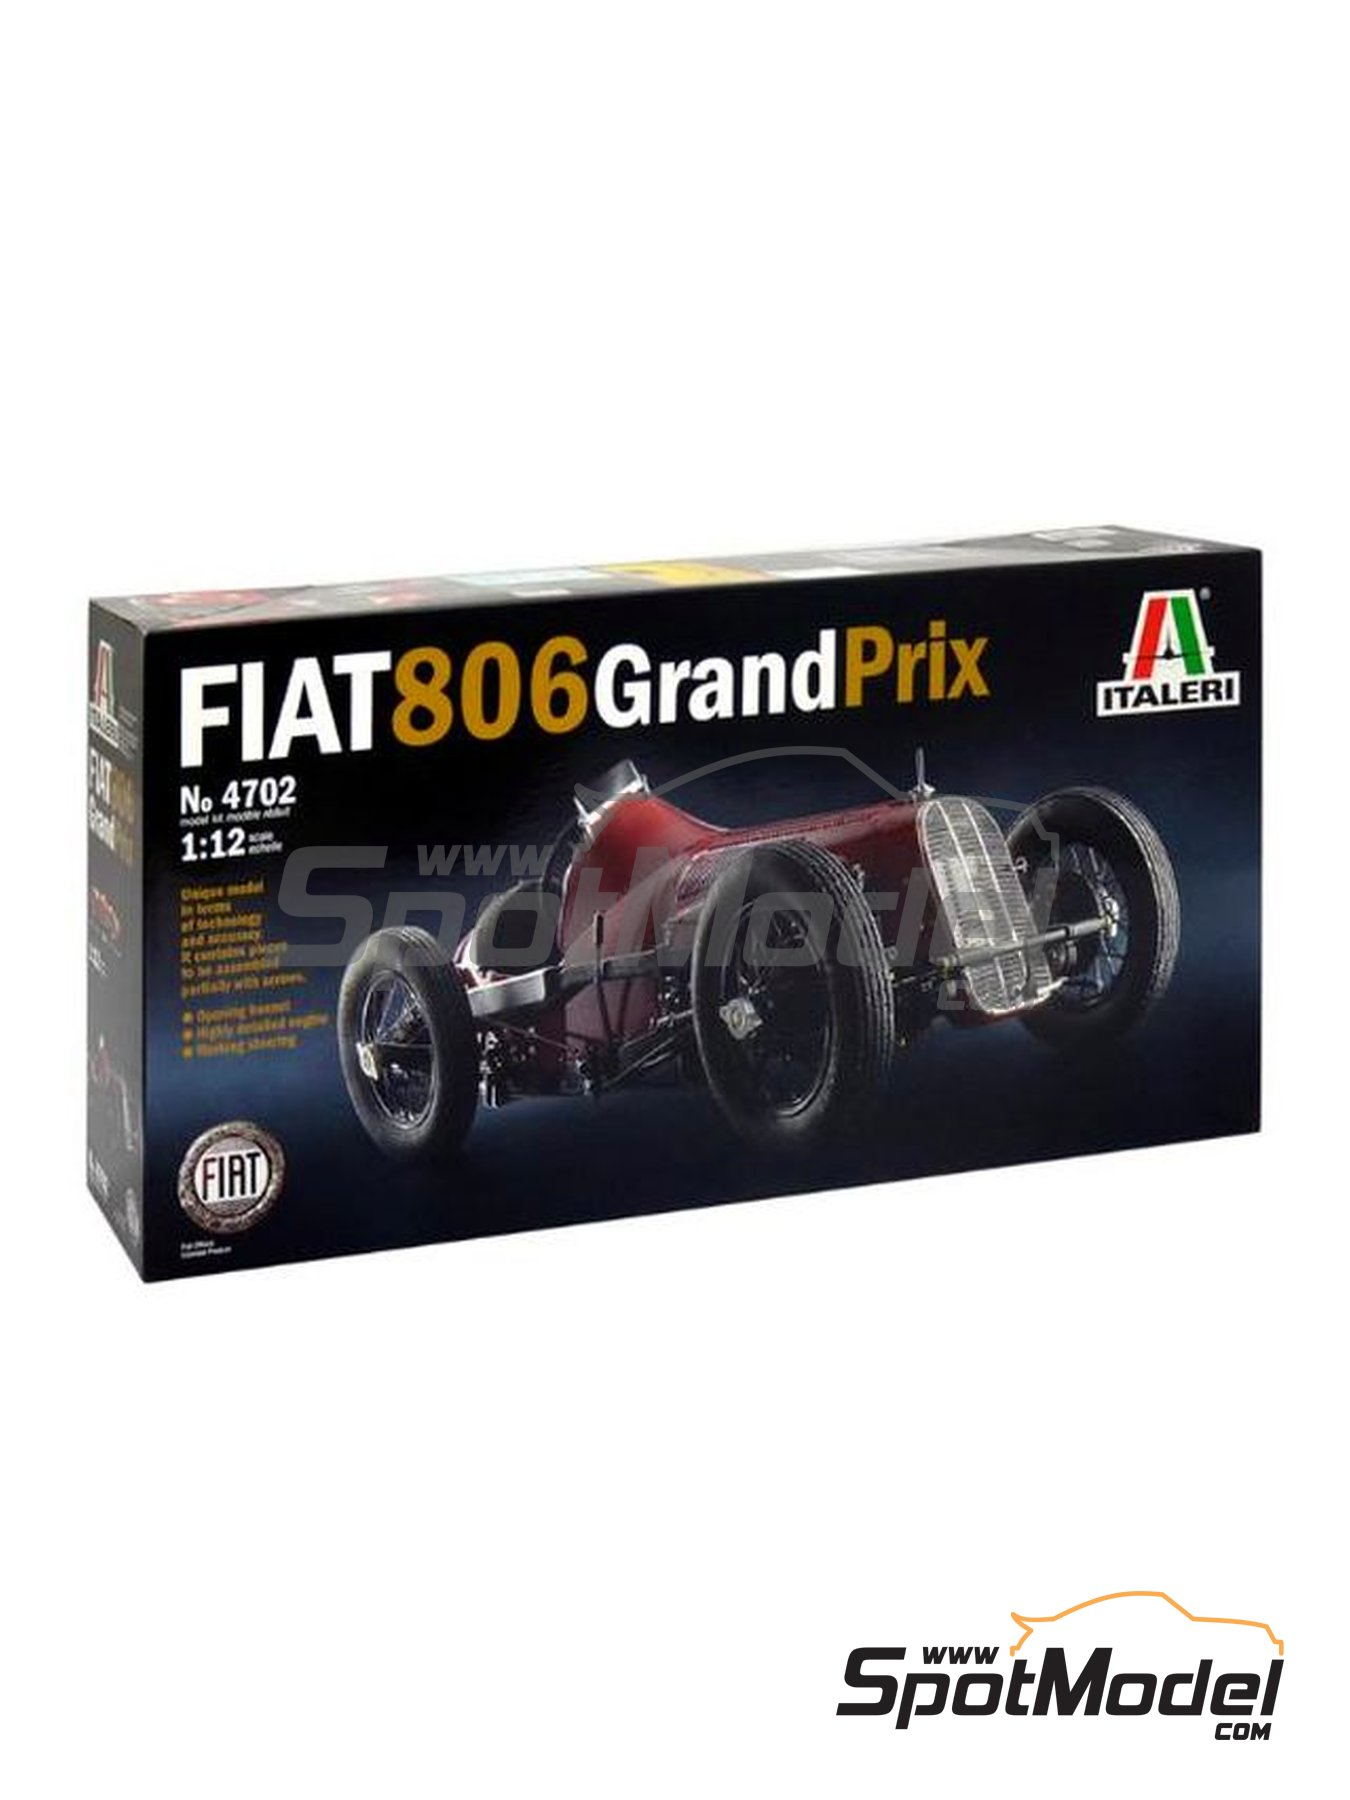 Fiat 806 Grand Prix - Milano Grand Prix 1927 | Model car kit in 1/12 scale manufactured by Italeri (ref. 4702) image